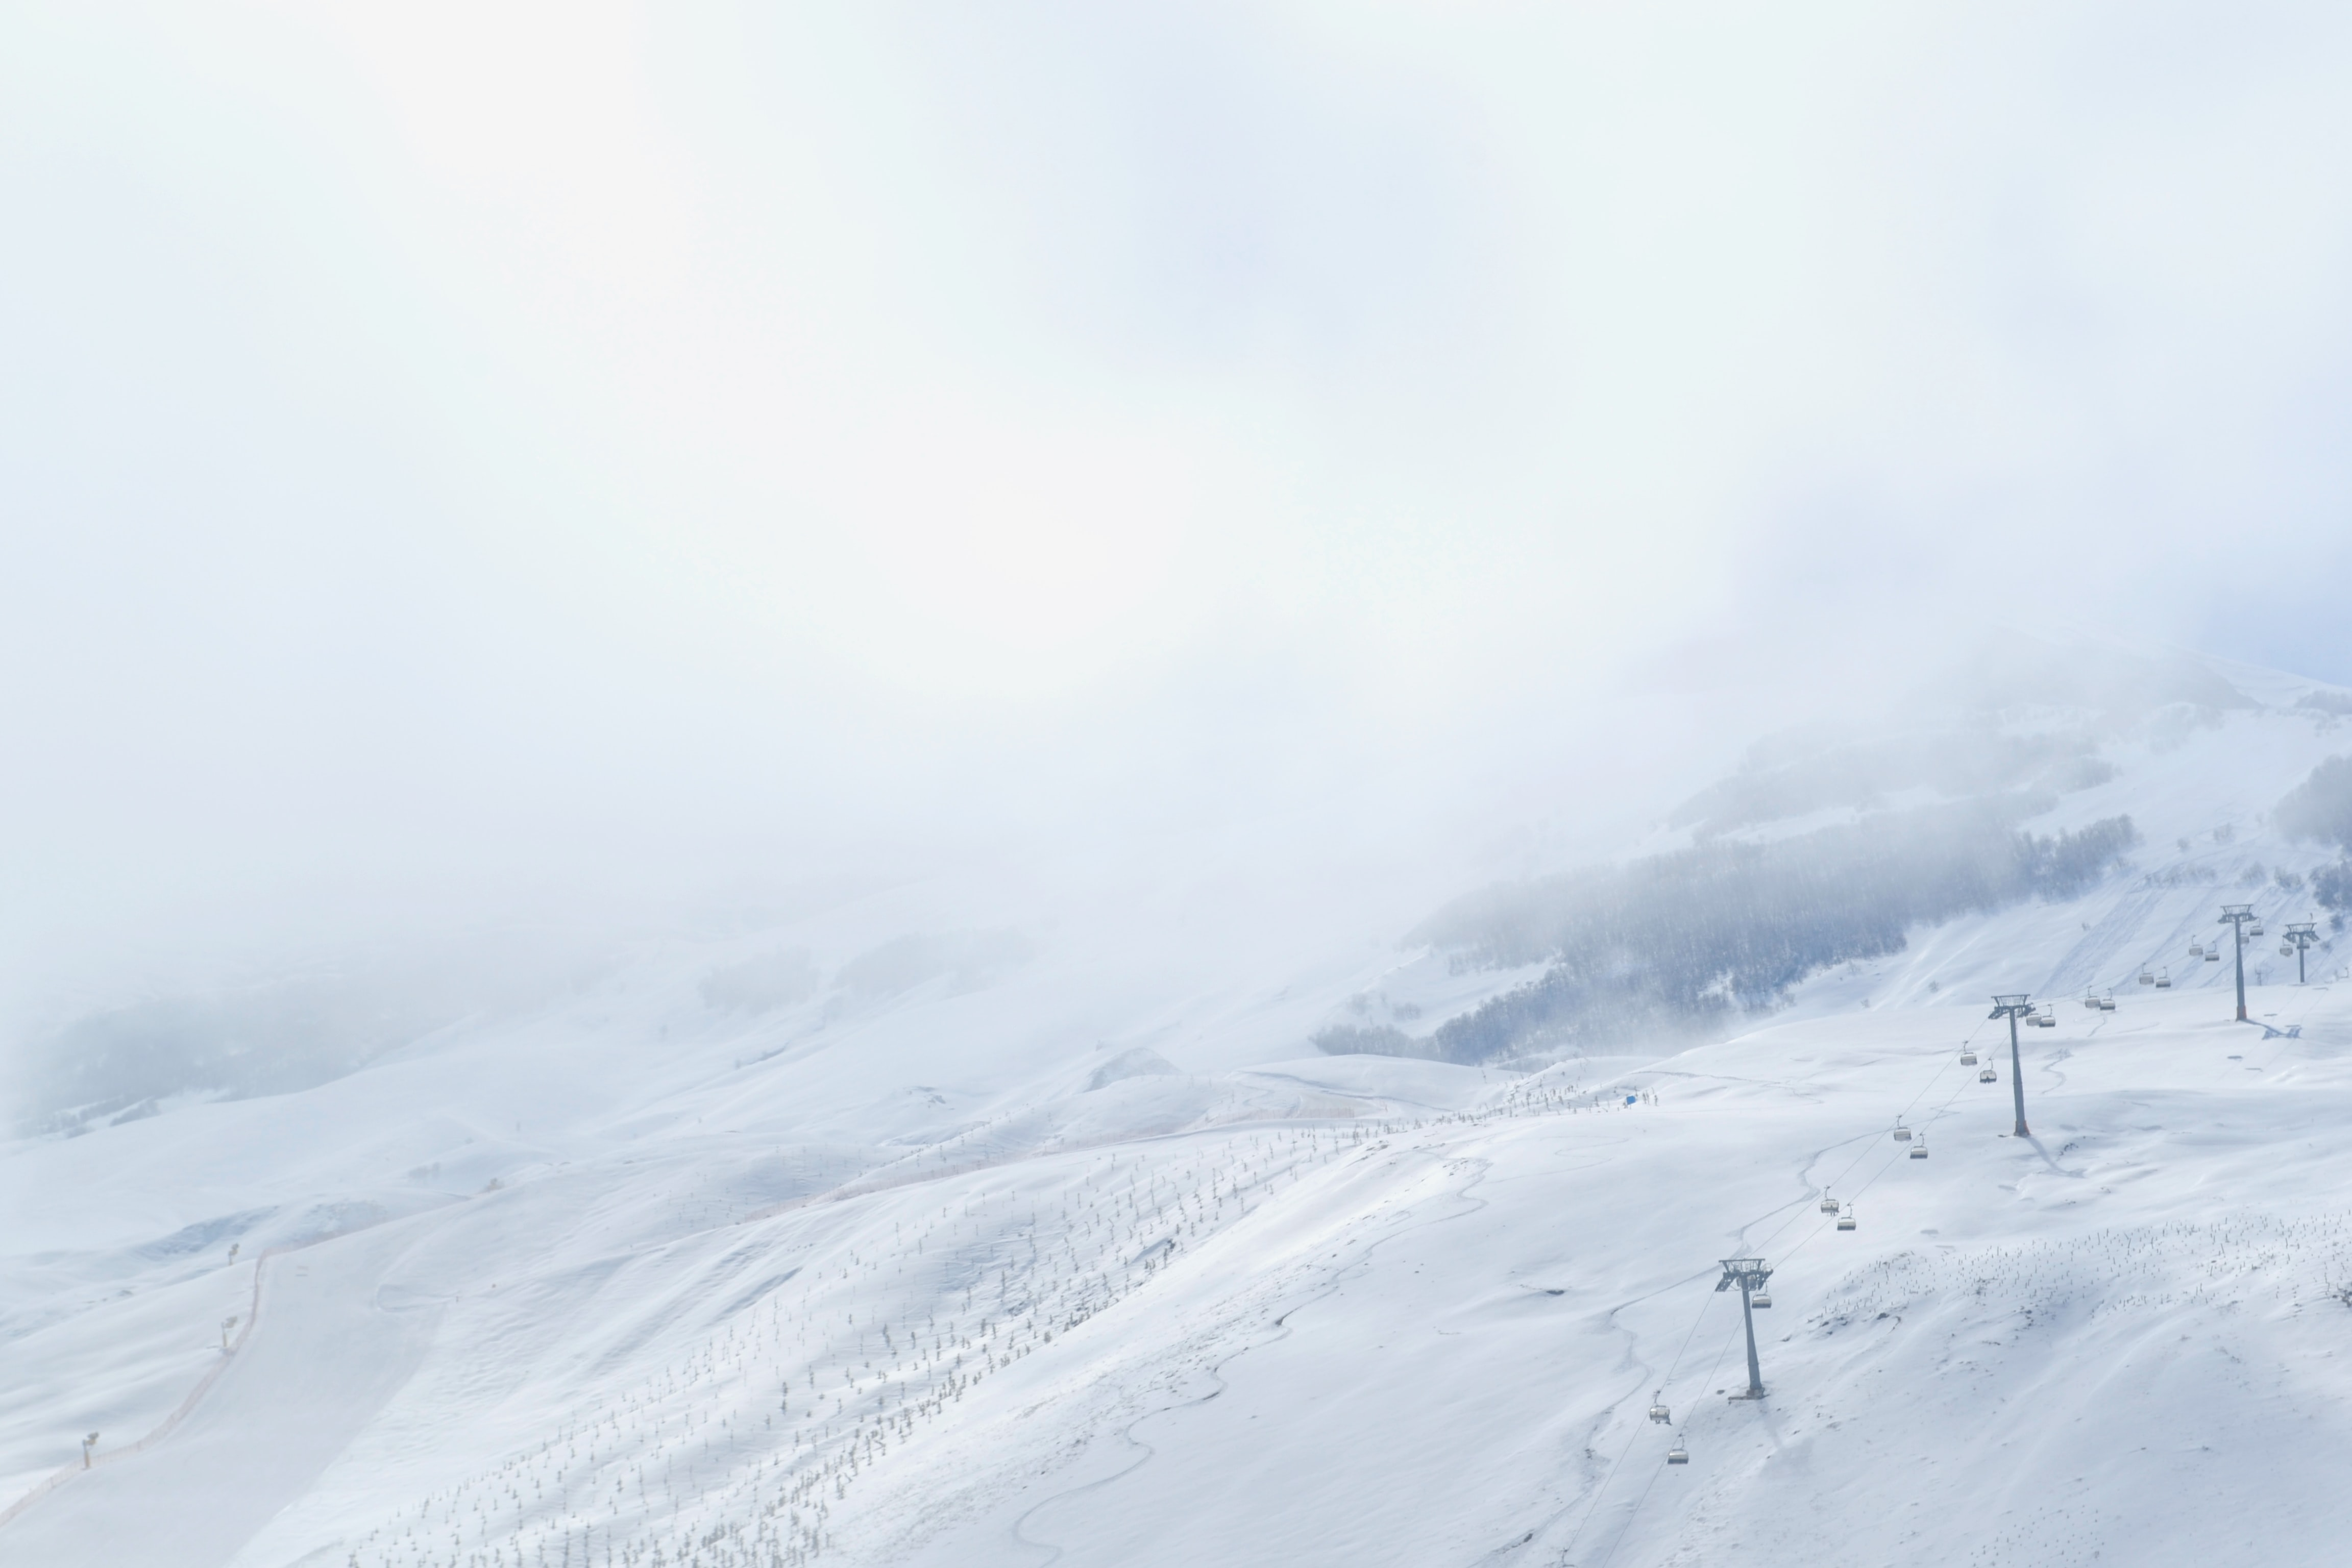 Snow covered and foggy mountain side with ski trails and a chairlift in Shahdag Mountain Resort